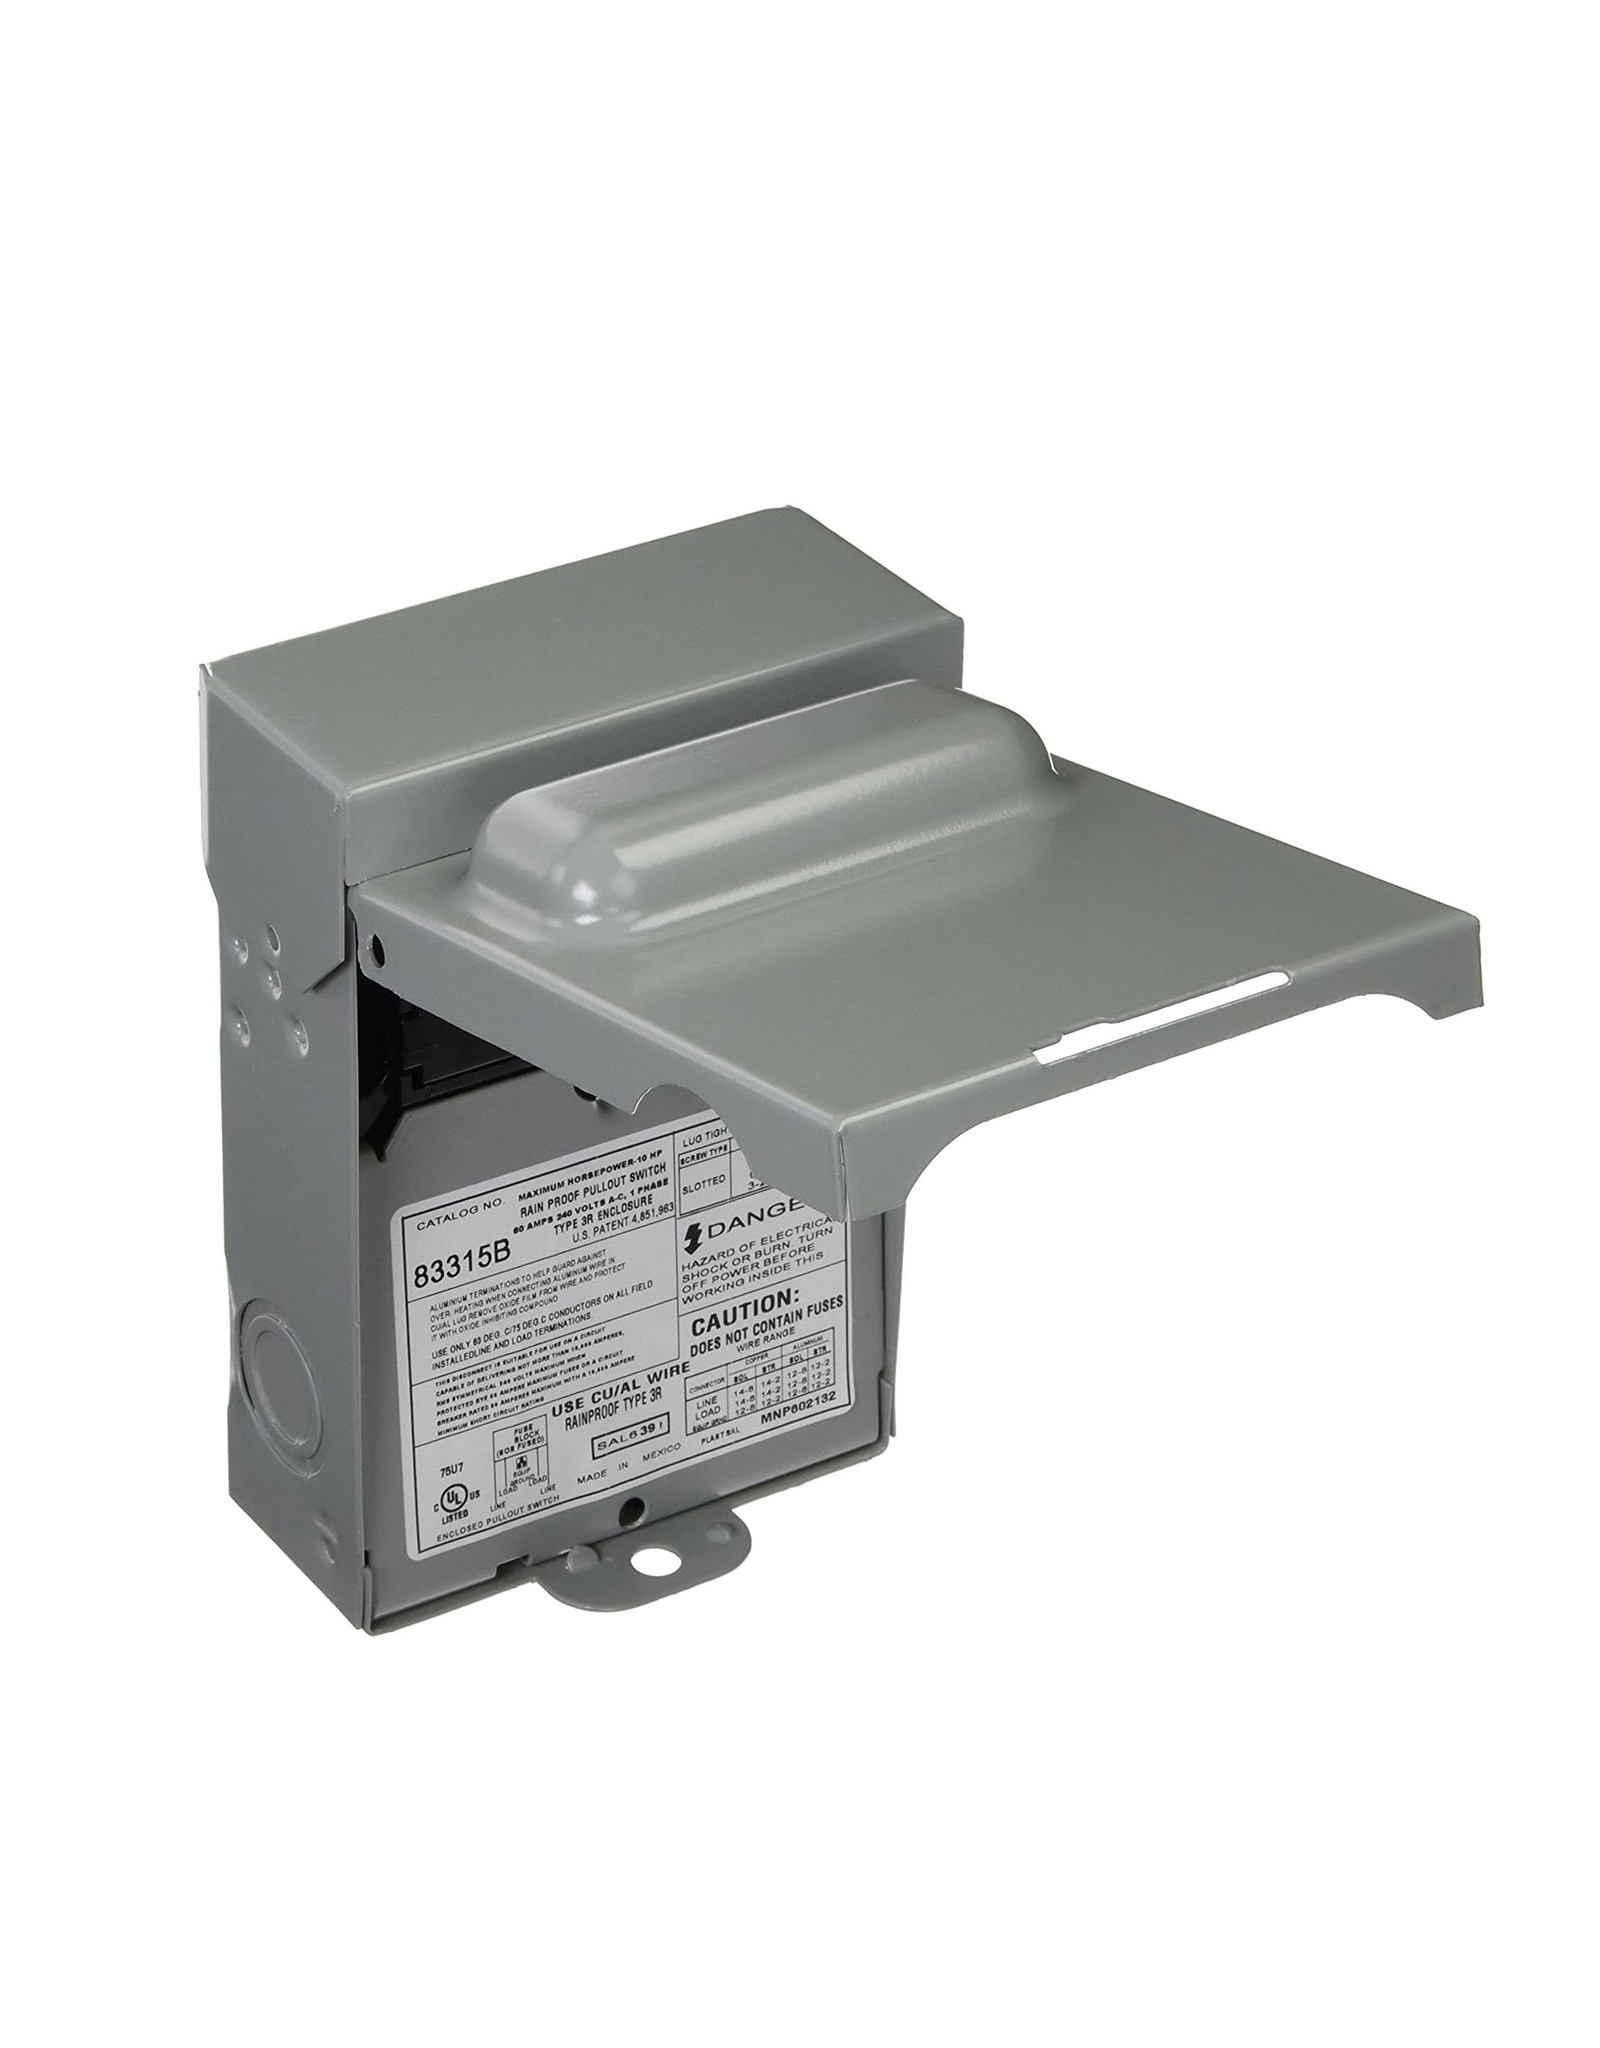 Motors and Armatures Inc. Non-fused Disconnect Switch 60A